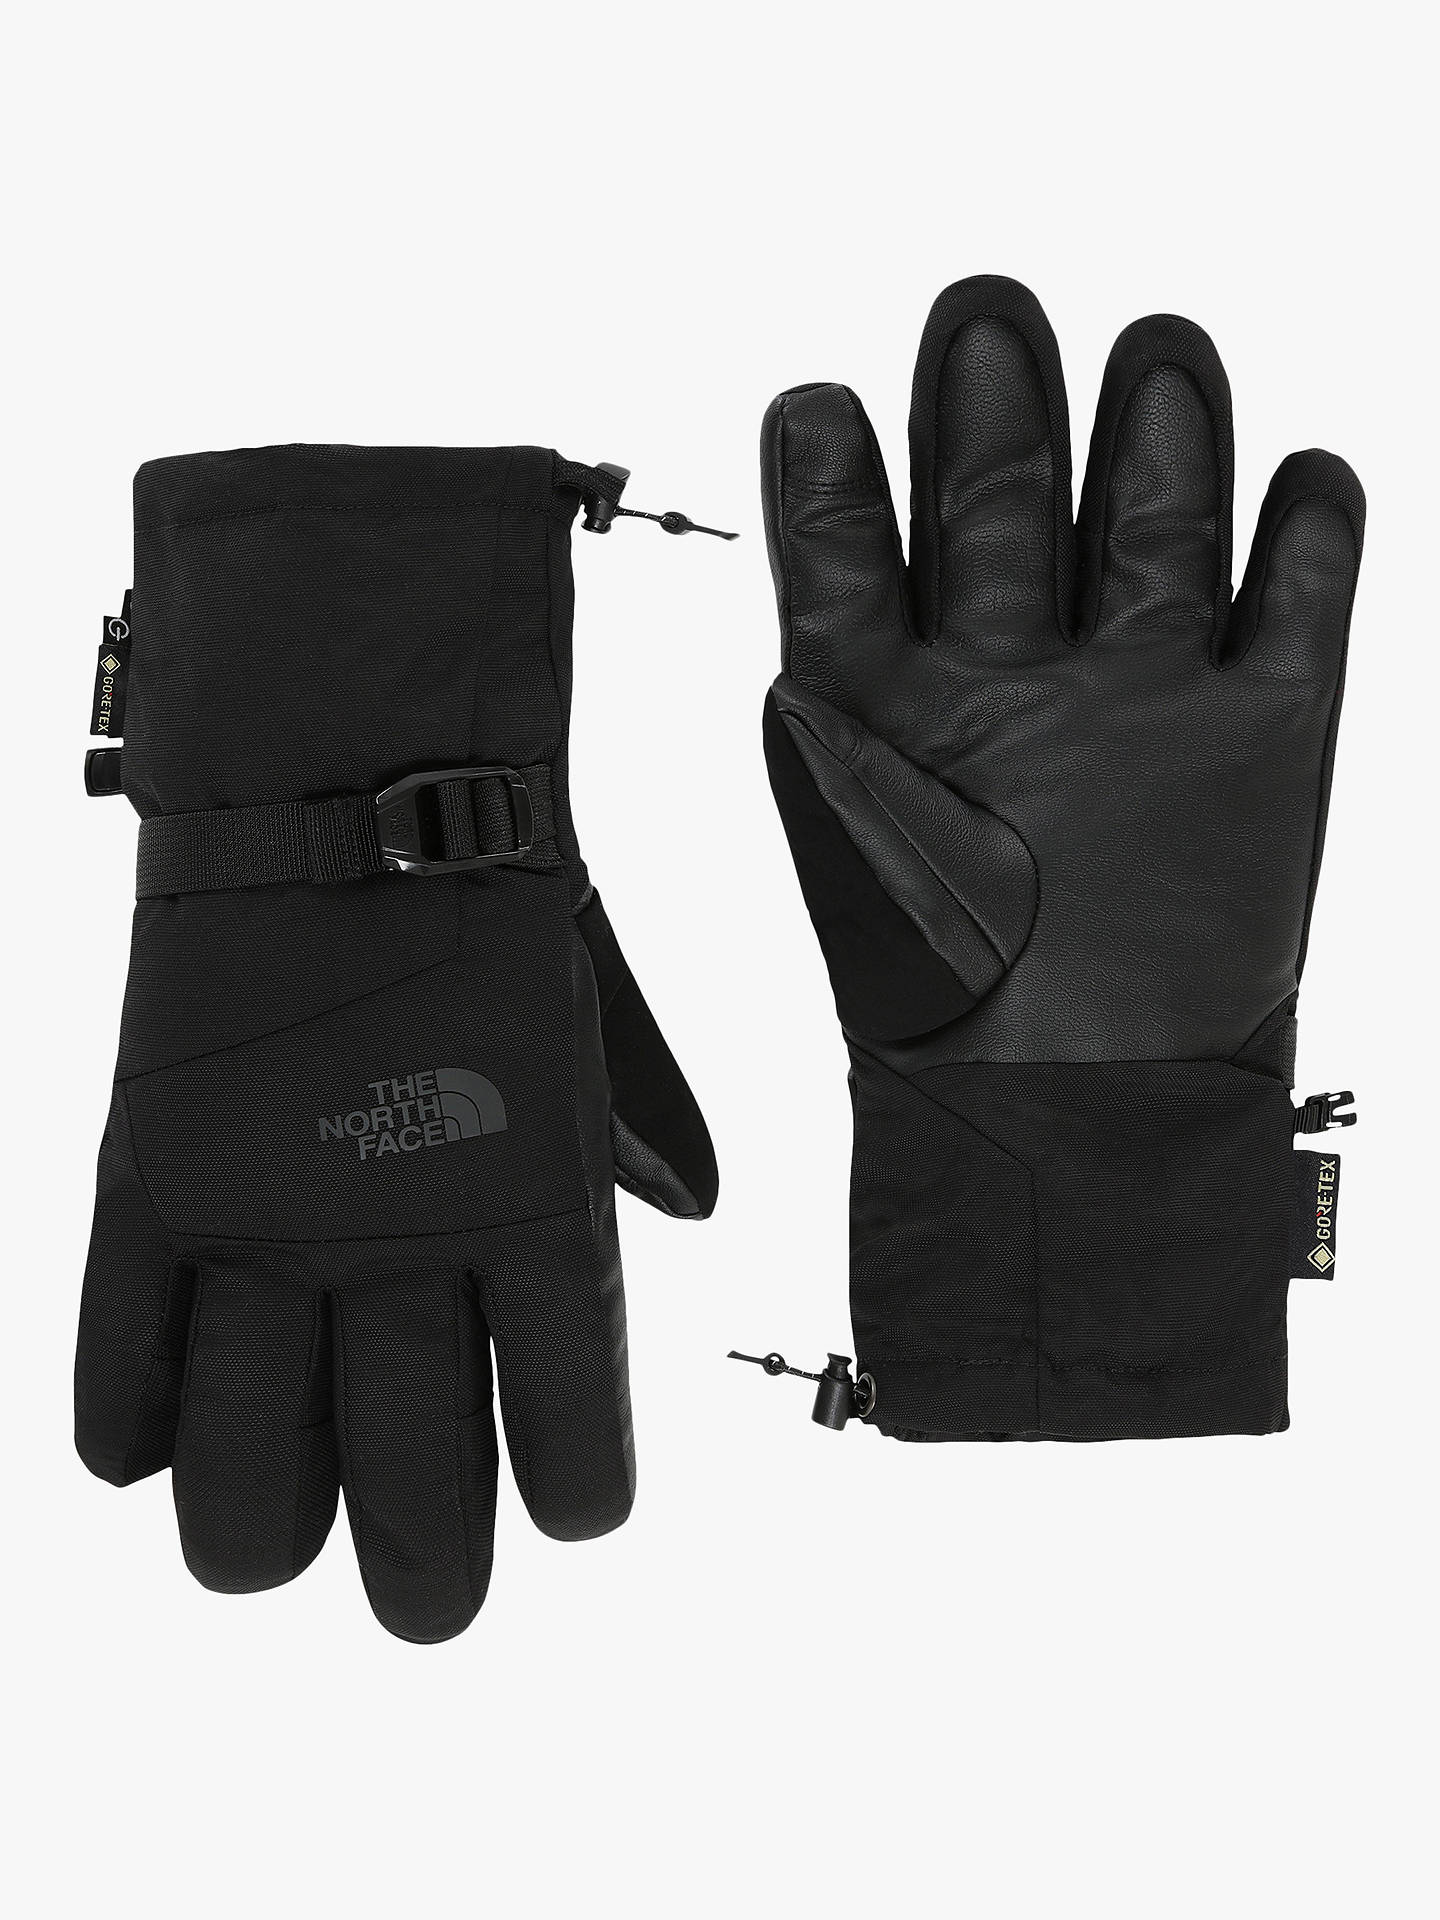 e85bba2a8 The North Face Montana Etip™ GTX Men's Ski Gloves, TNF Black at John ...